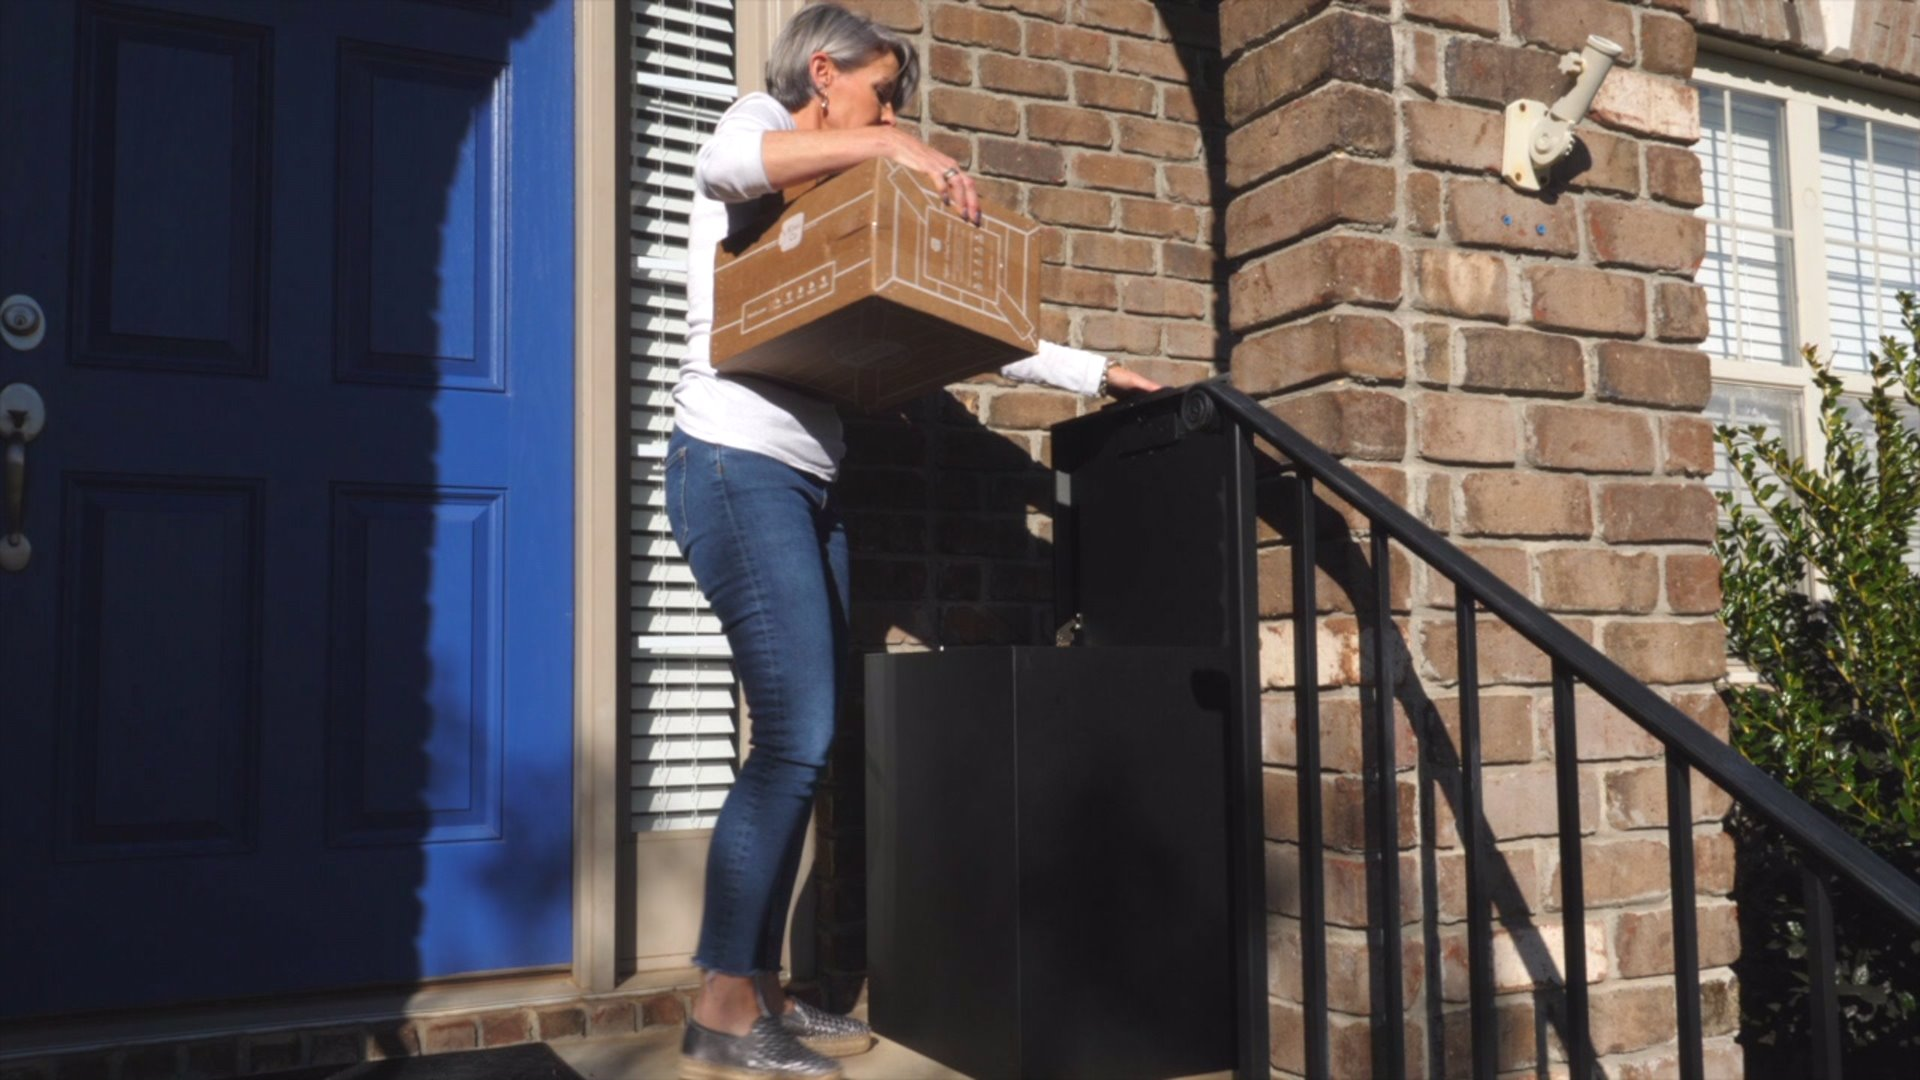 Winston-Salem company aims to put porch pirates out of business with the Loxx Boxx